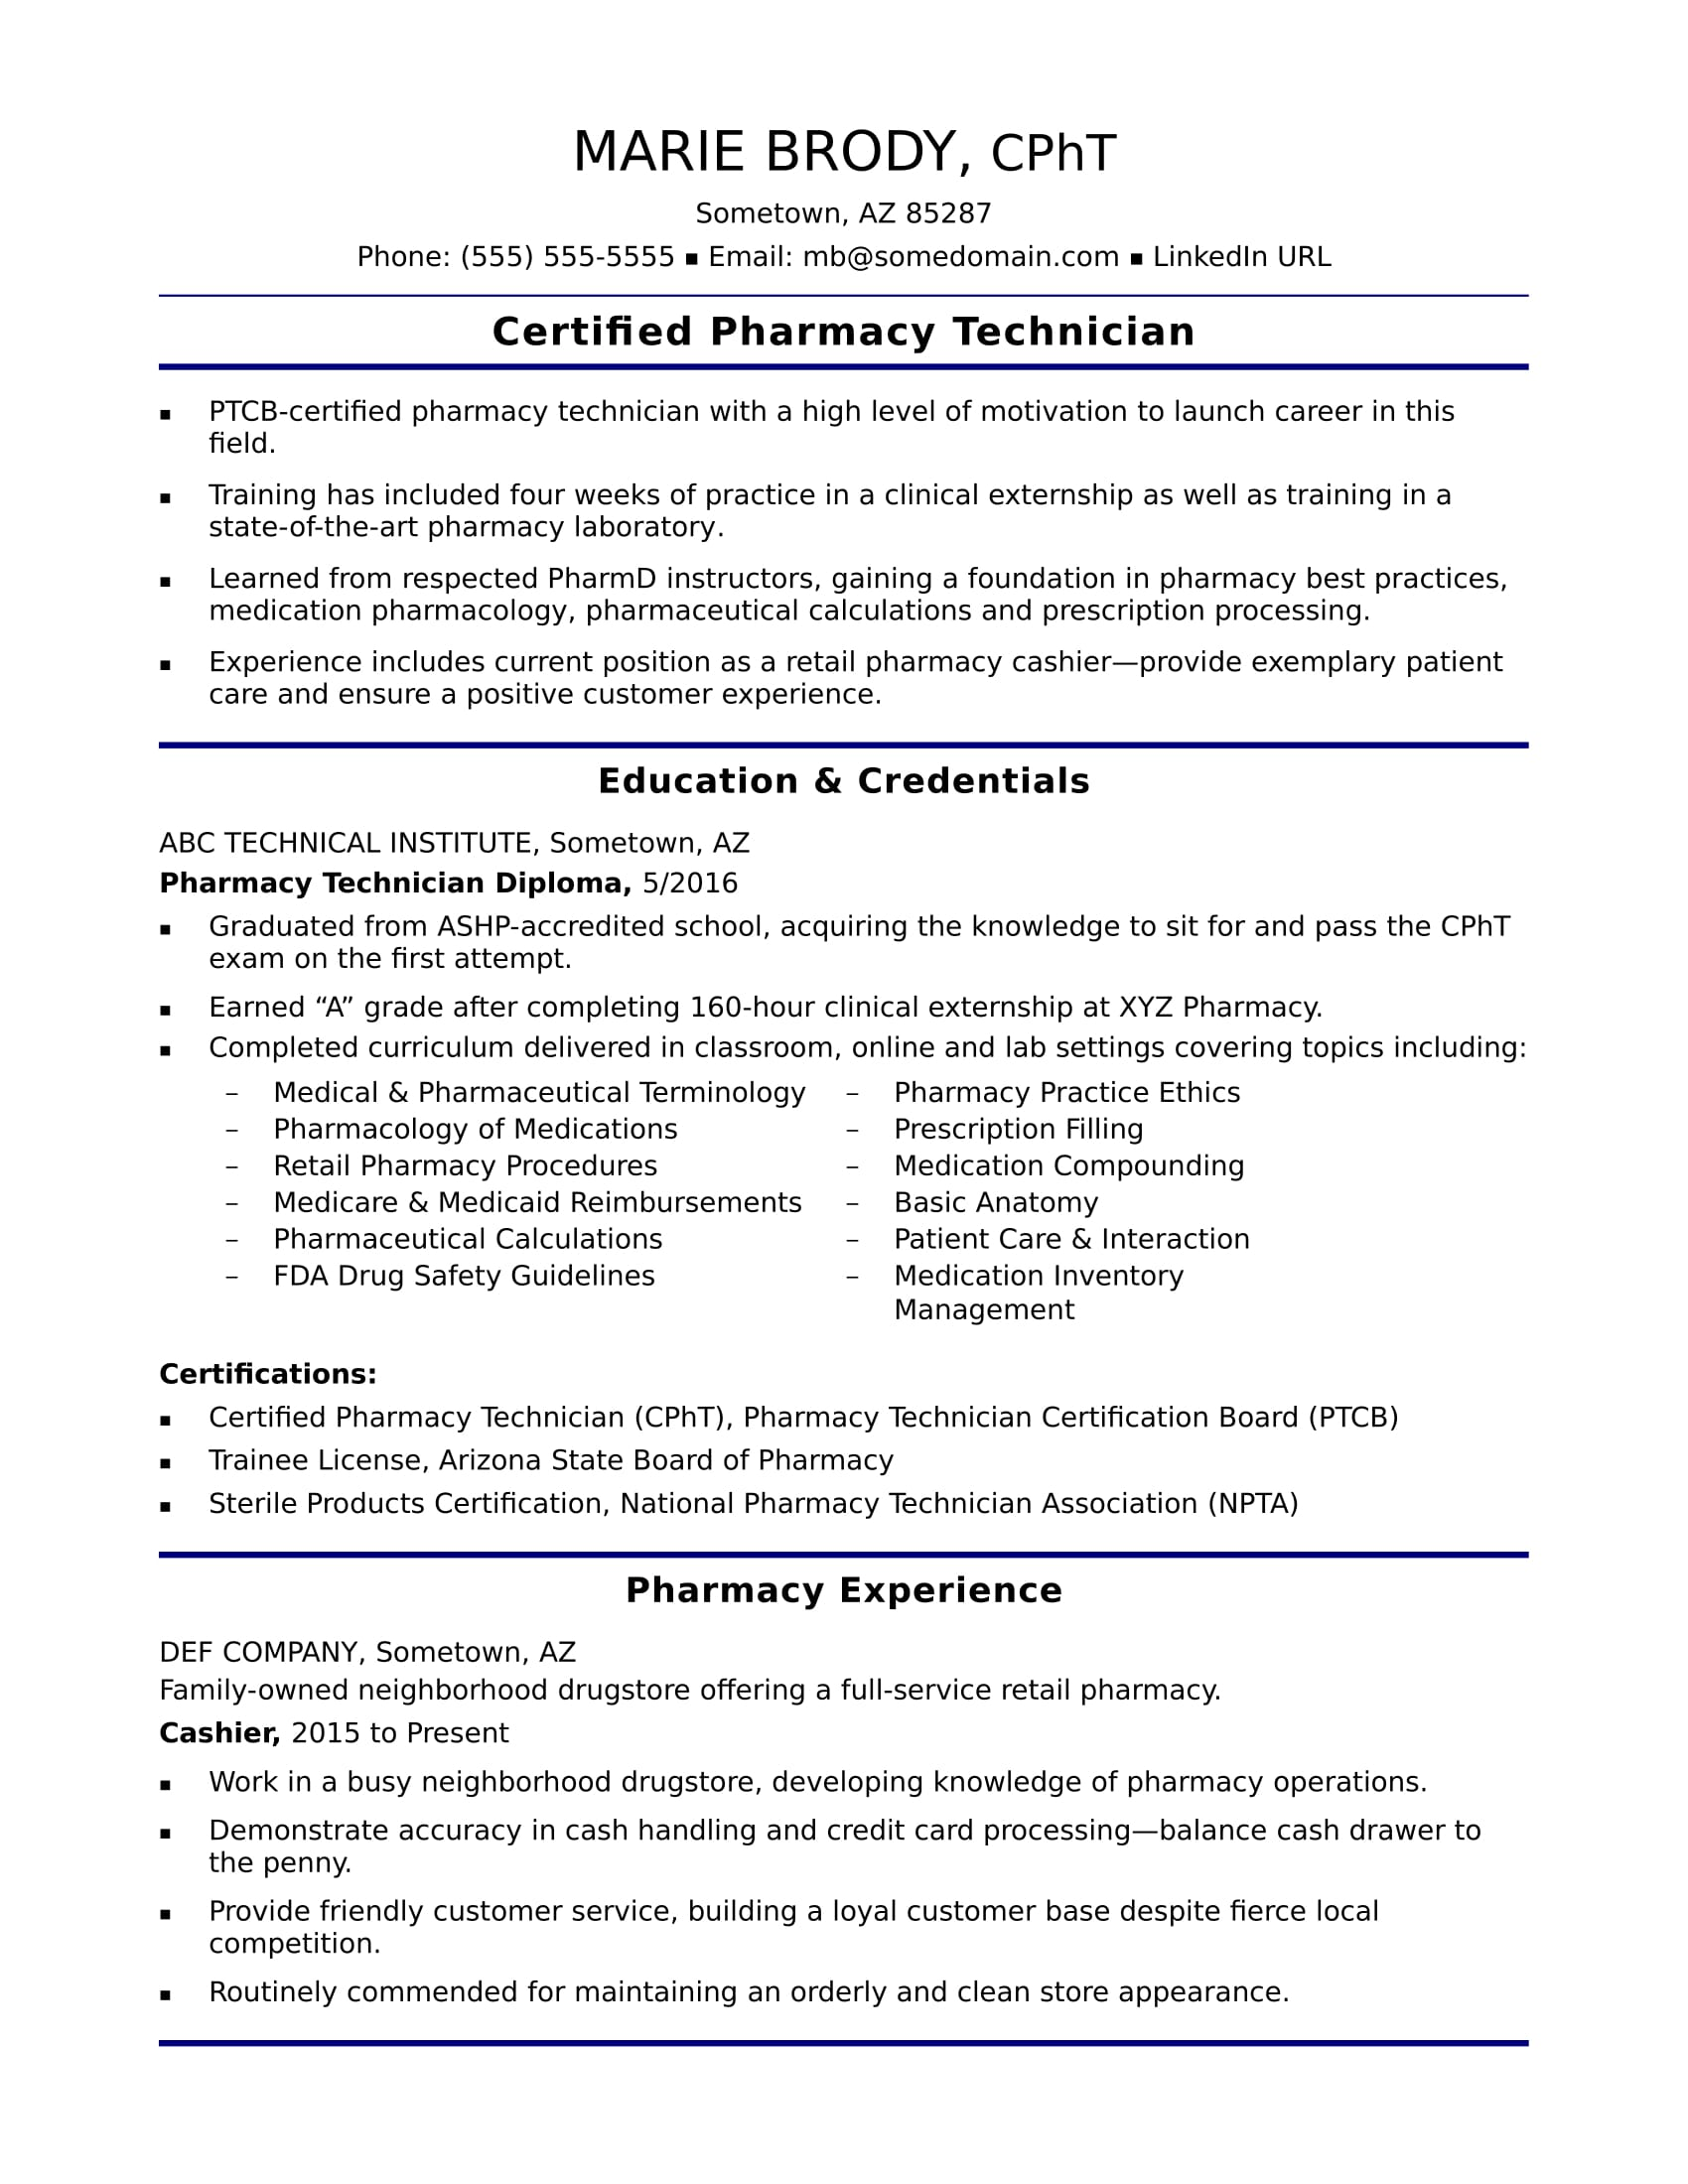 Superb Sample Resume For An Entry Level Pharmacy Technician